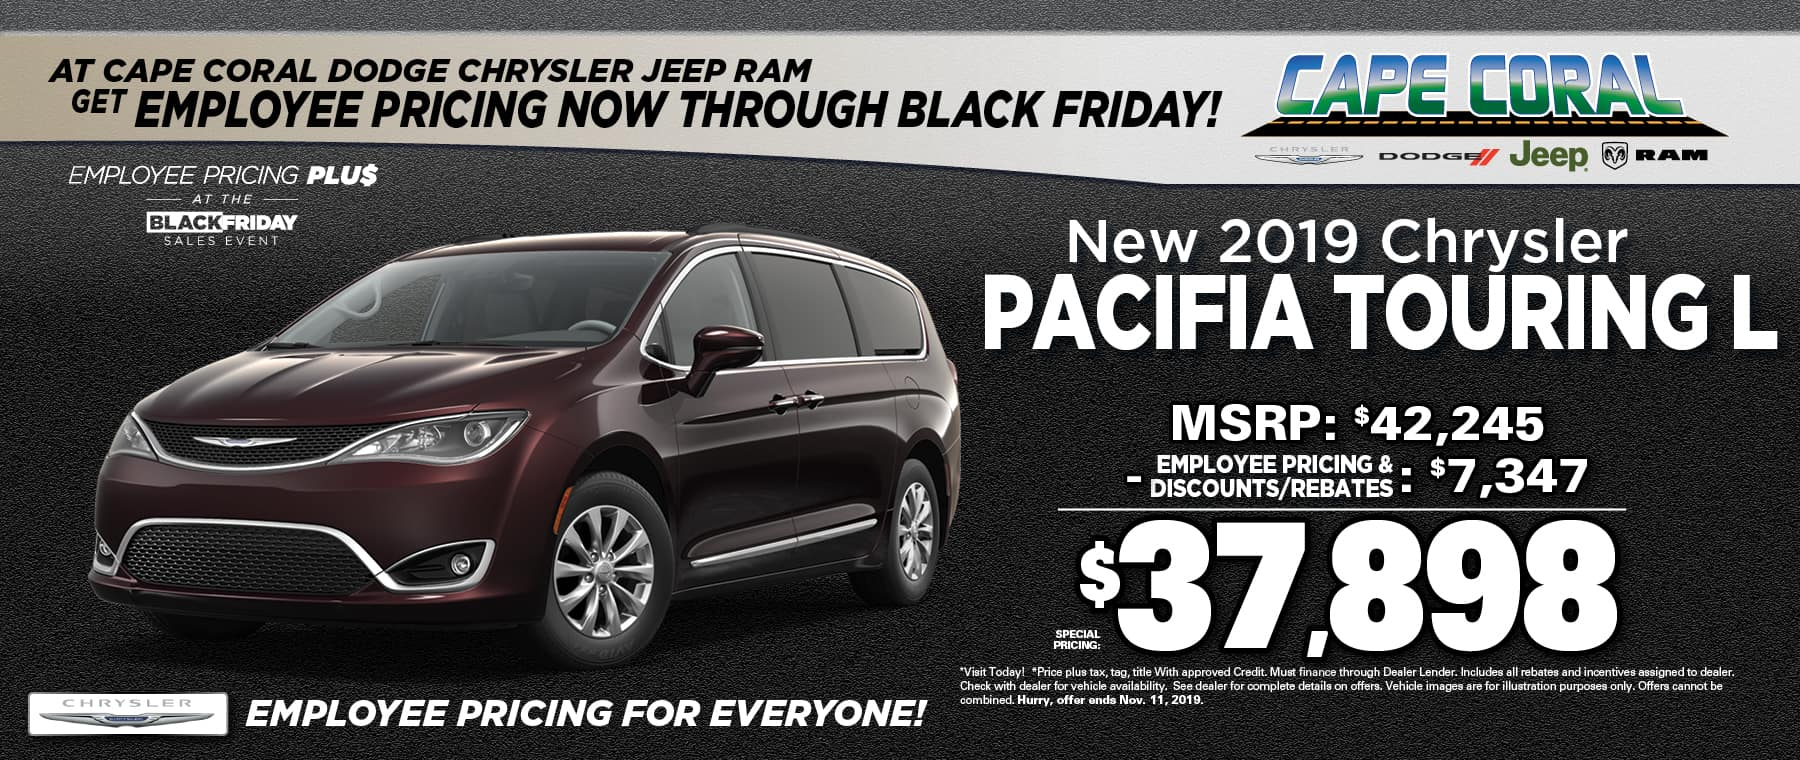 New 2019 Chrysler Pacificas!